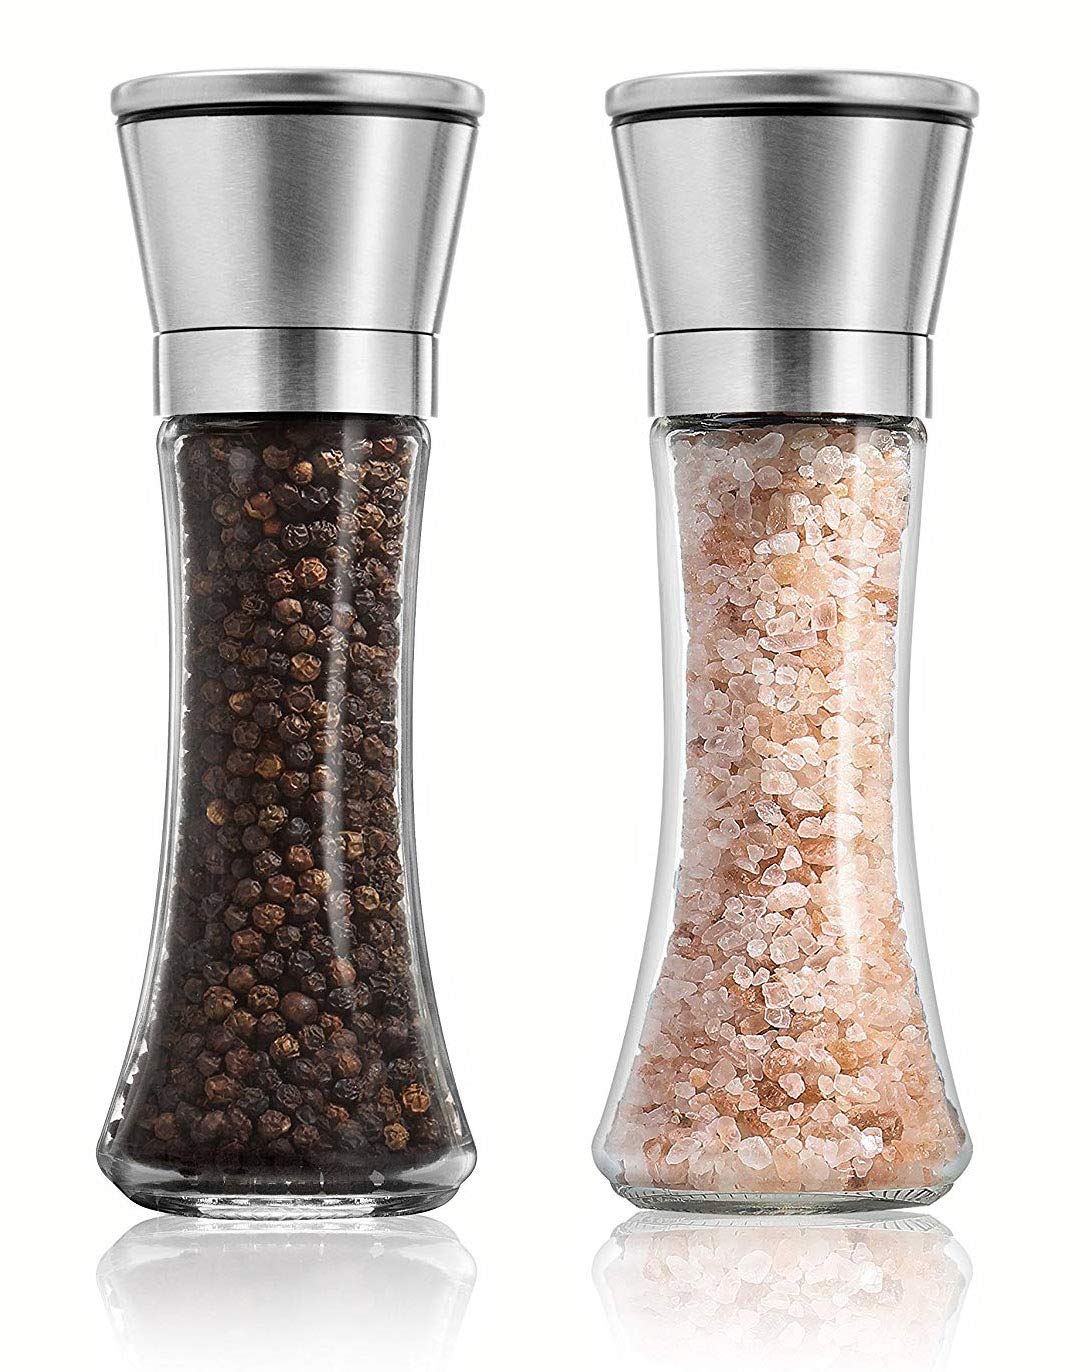 Salt And Pepper Grinder Set Of 2 - Premium Stainless Steel Mill Set - Enjoy Your Favorite Spices, Fresh Ground Pepper, Himalayan Or Sea Salts E-COMMERCE BASICS SPM-A0801